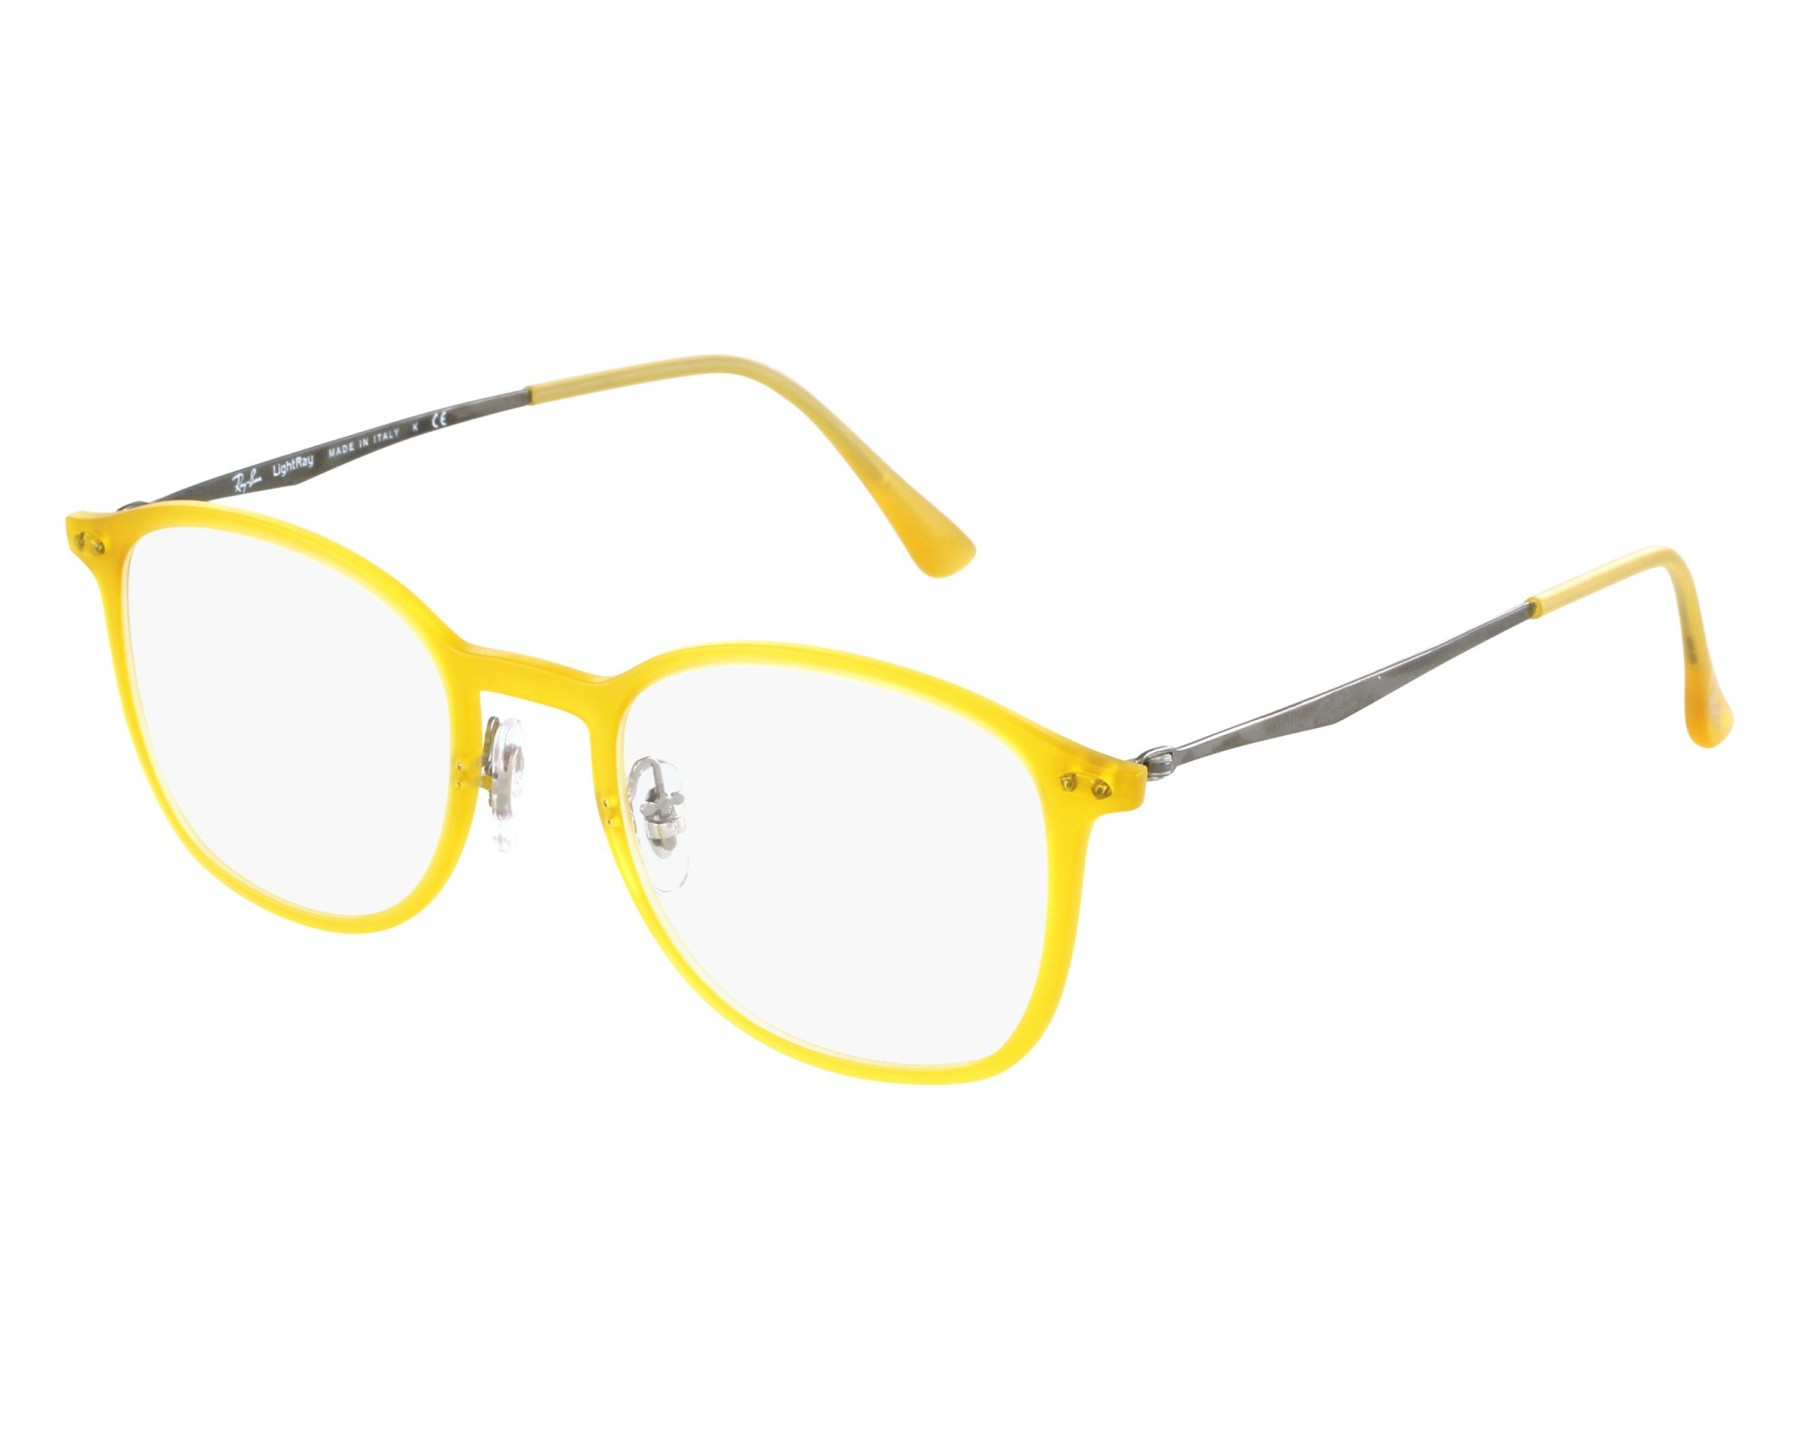 54f4fee164 eyeglasses Ray-Ban RX-7051 5519 - Yellow front view